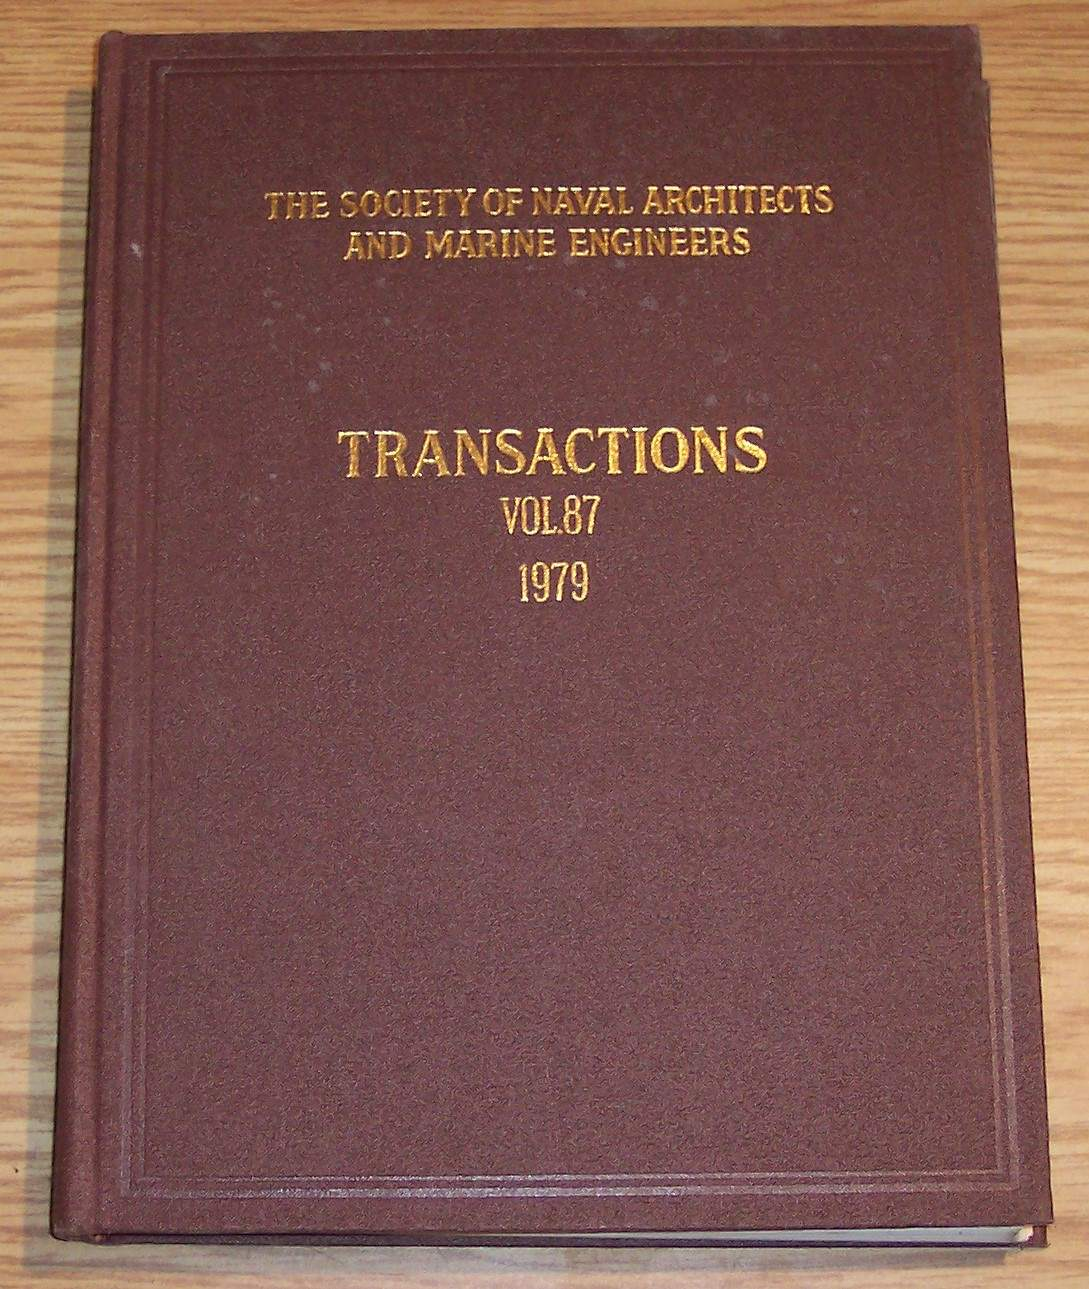 Image for The Society of Naval Architects and Marine Engineers Transactions Volume 87 1979